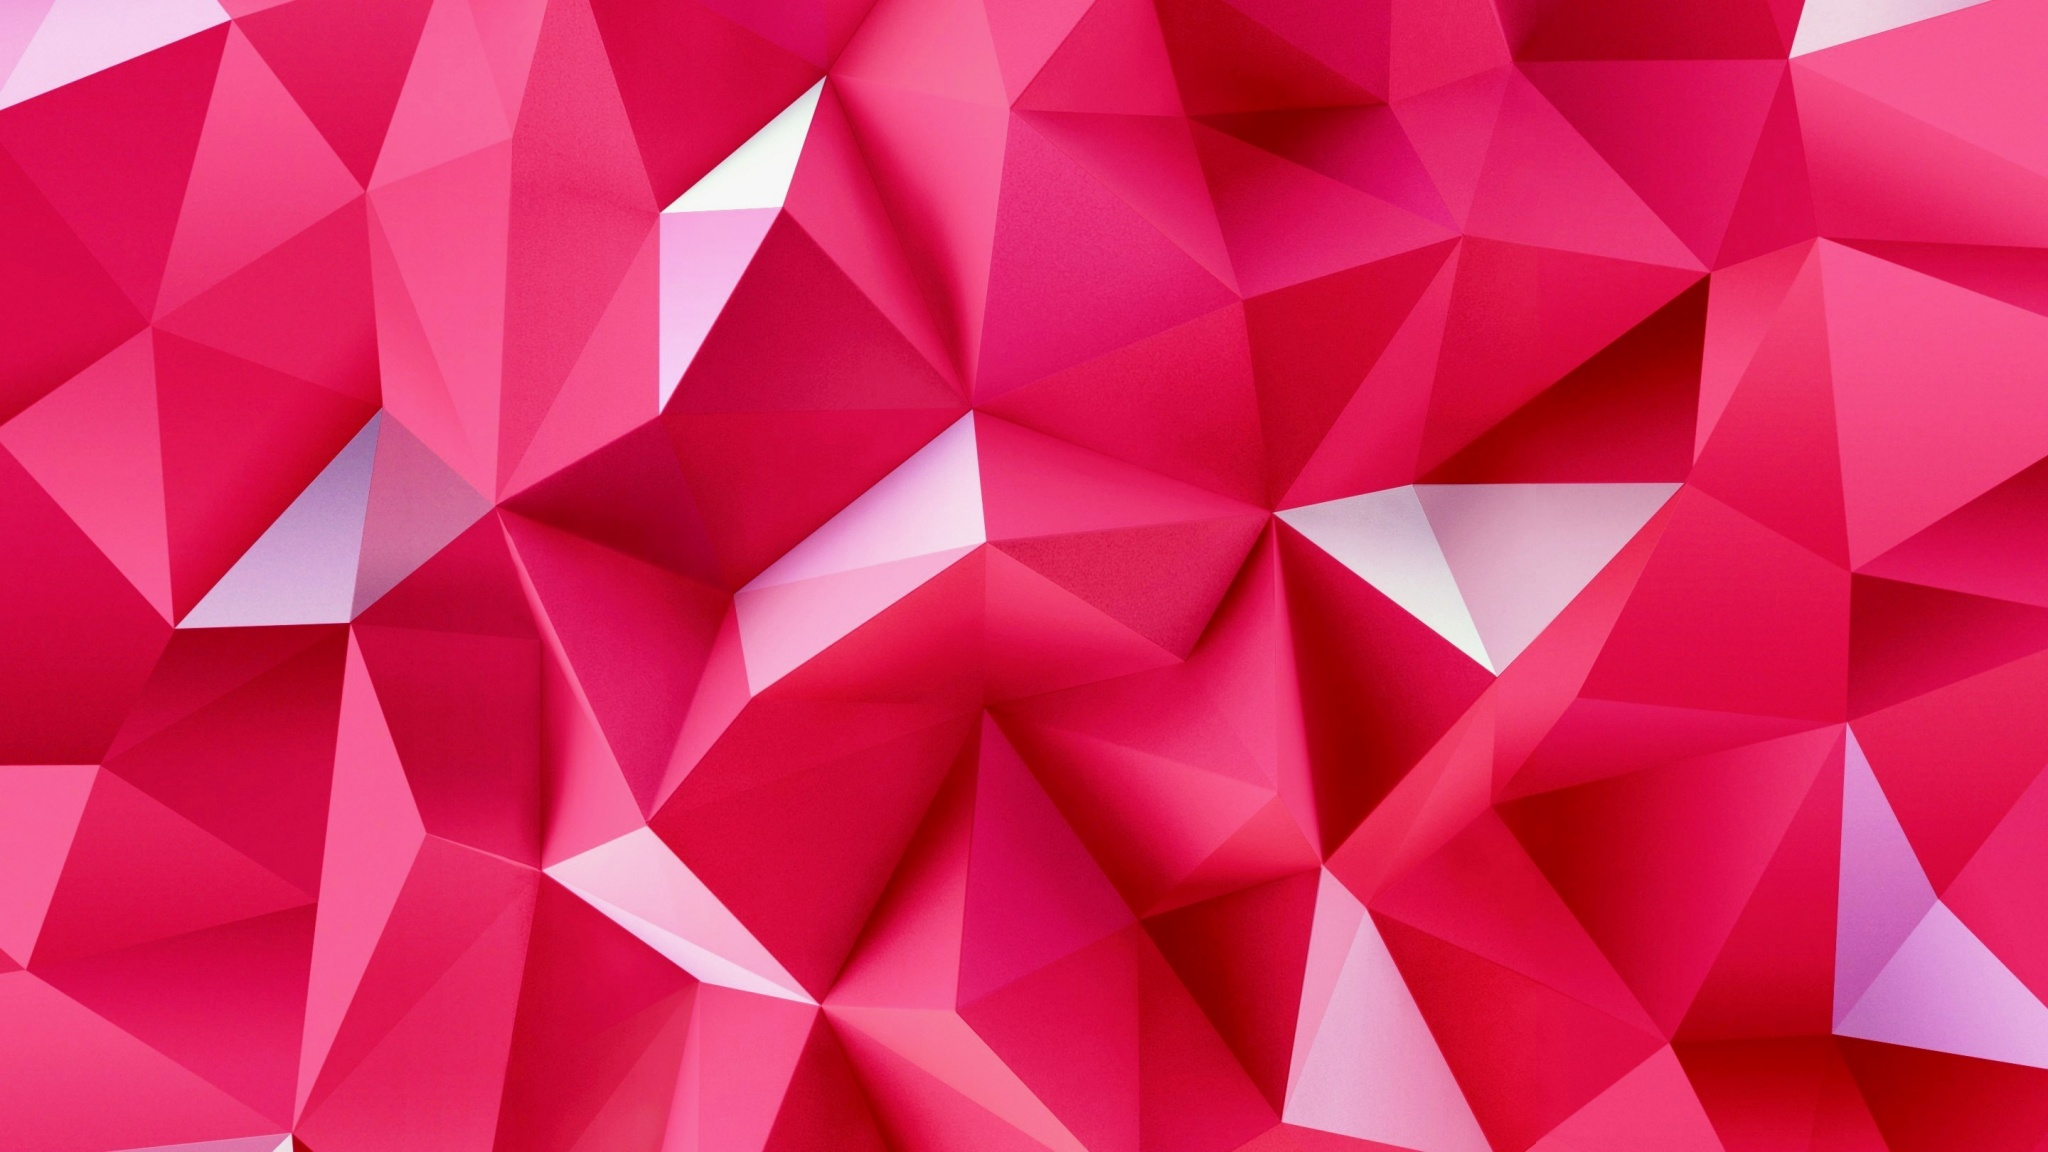 3D Pink Triangles Wallpapers